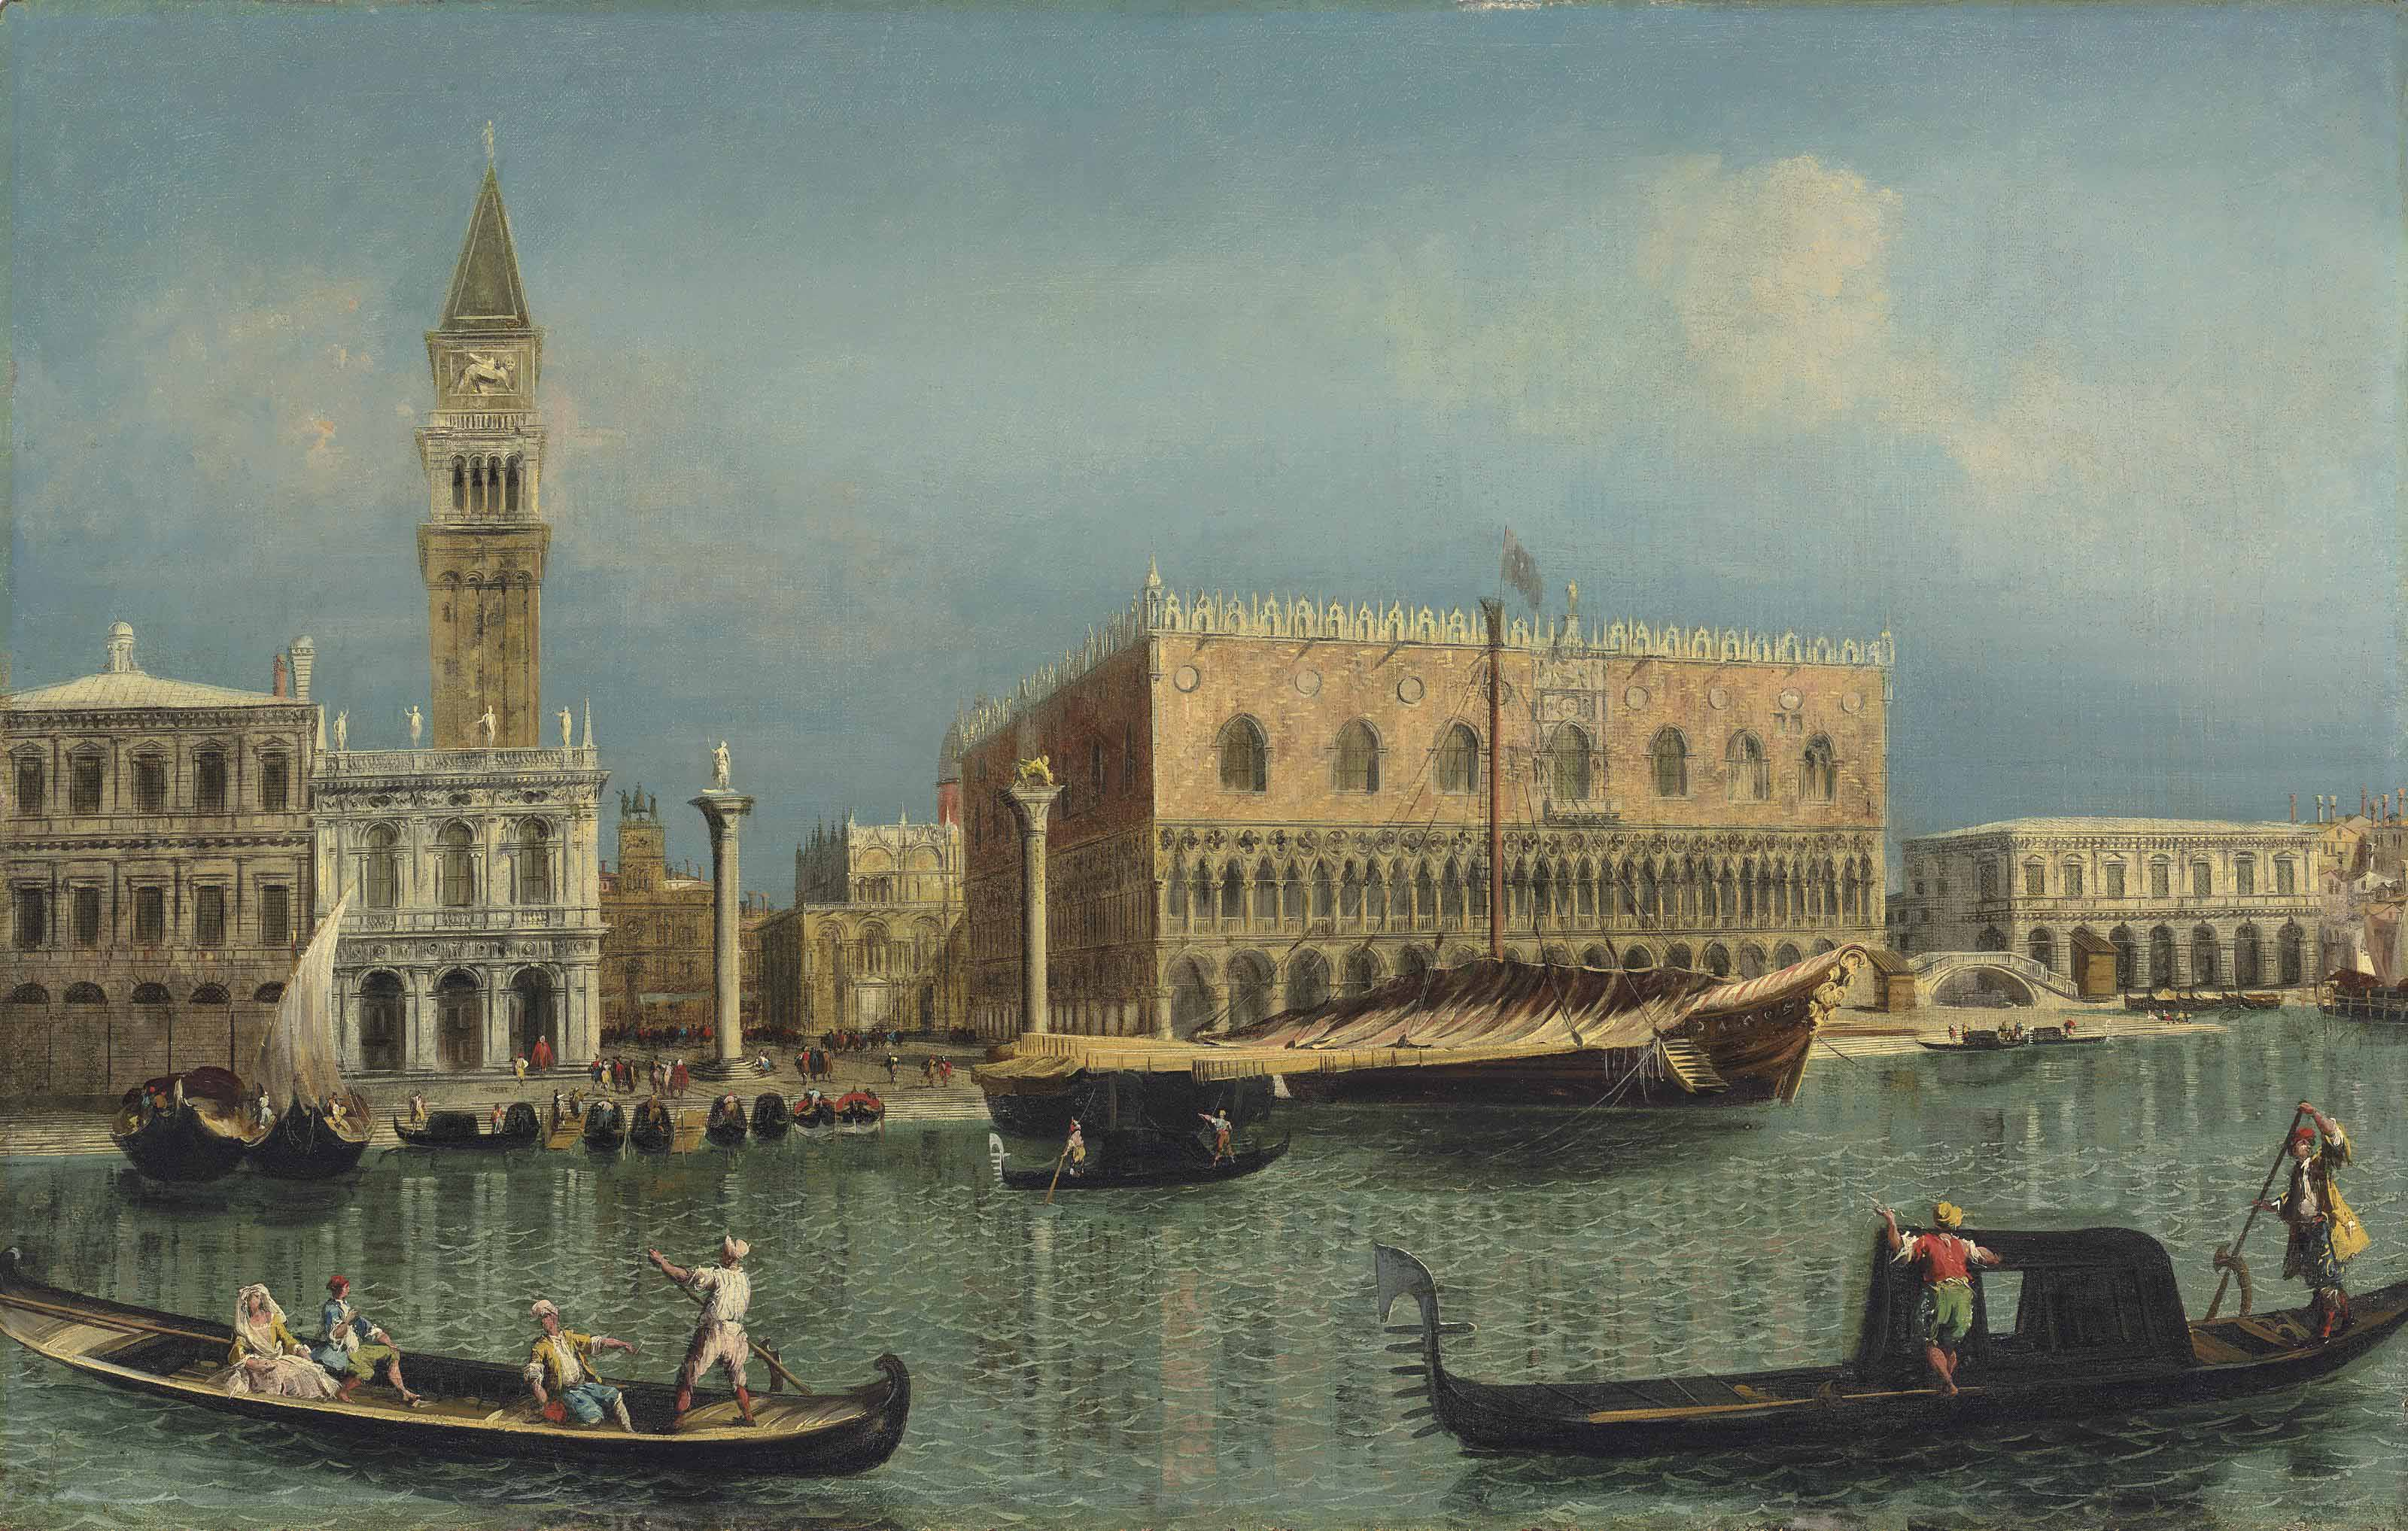 The Bacino di San Marco, Venice, with the Piazzetta and the Doge's Palace